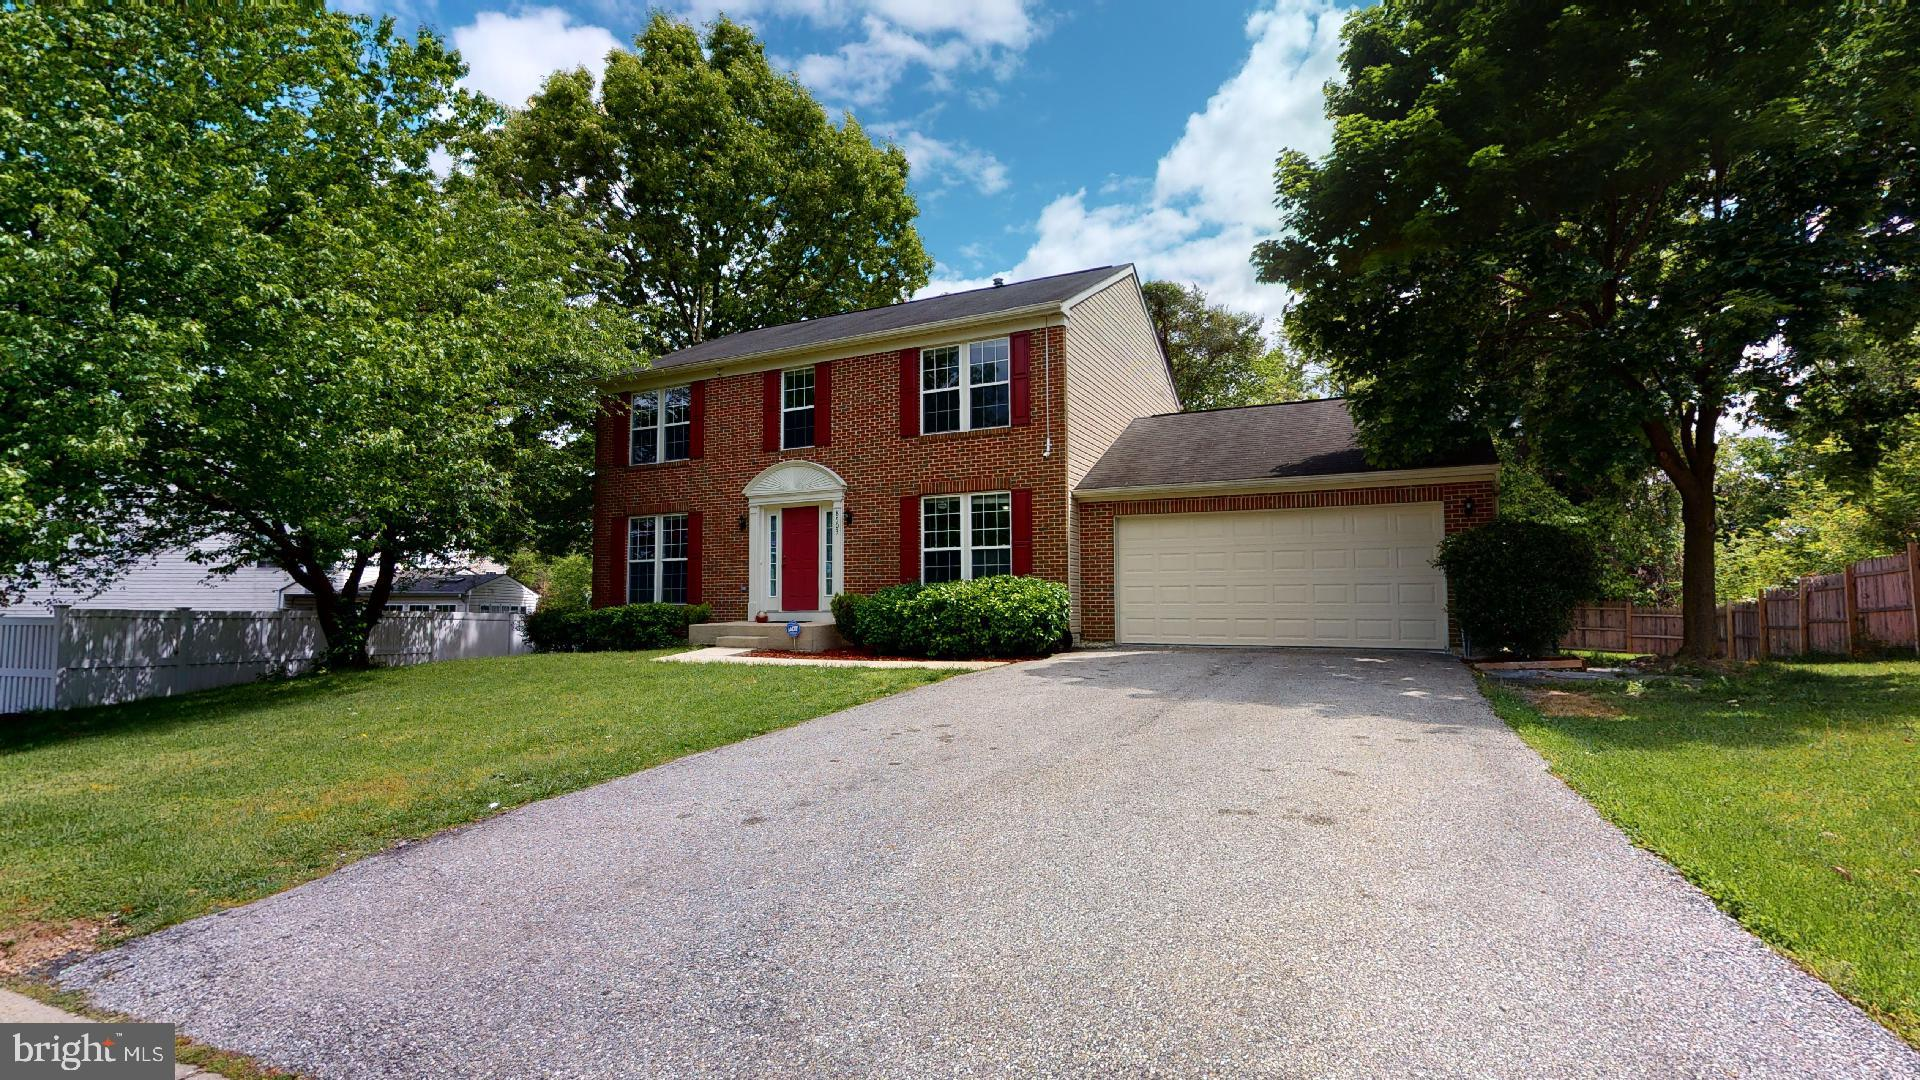 OPEN HOUSE SUNDAY, JULY 5th 1-3PM!! PRICE REDUCED!! Beautiful Brick Front SFH with 4 Bedrooms & 3.5 Bathrooms, 2 car garage and plenty of parking spaces, wood flooring on first level, new carpet on 2nd level, fresh paint throughout the home, Gourmet kitchen with granite, island and SS appliances, family room on main level, basement has a kitchenette with den & full bathroom, walk-up level, large fenced back yard with deck to entertain family & friends, great location, close to 495, Rt 50, Fed Ex Field, Metro Station, Largo New Town Center & So much more!